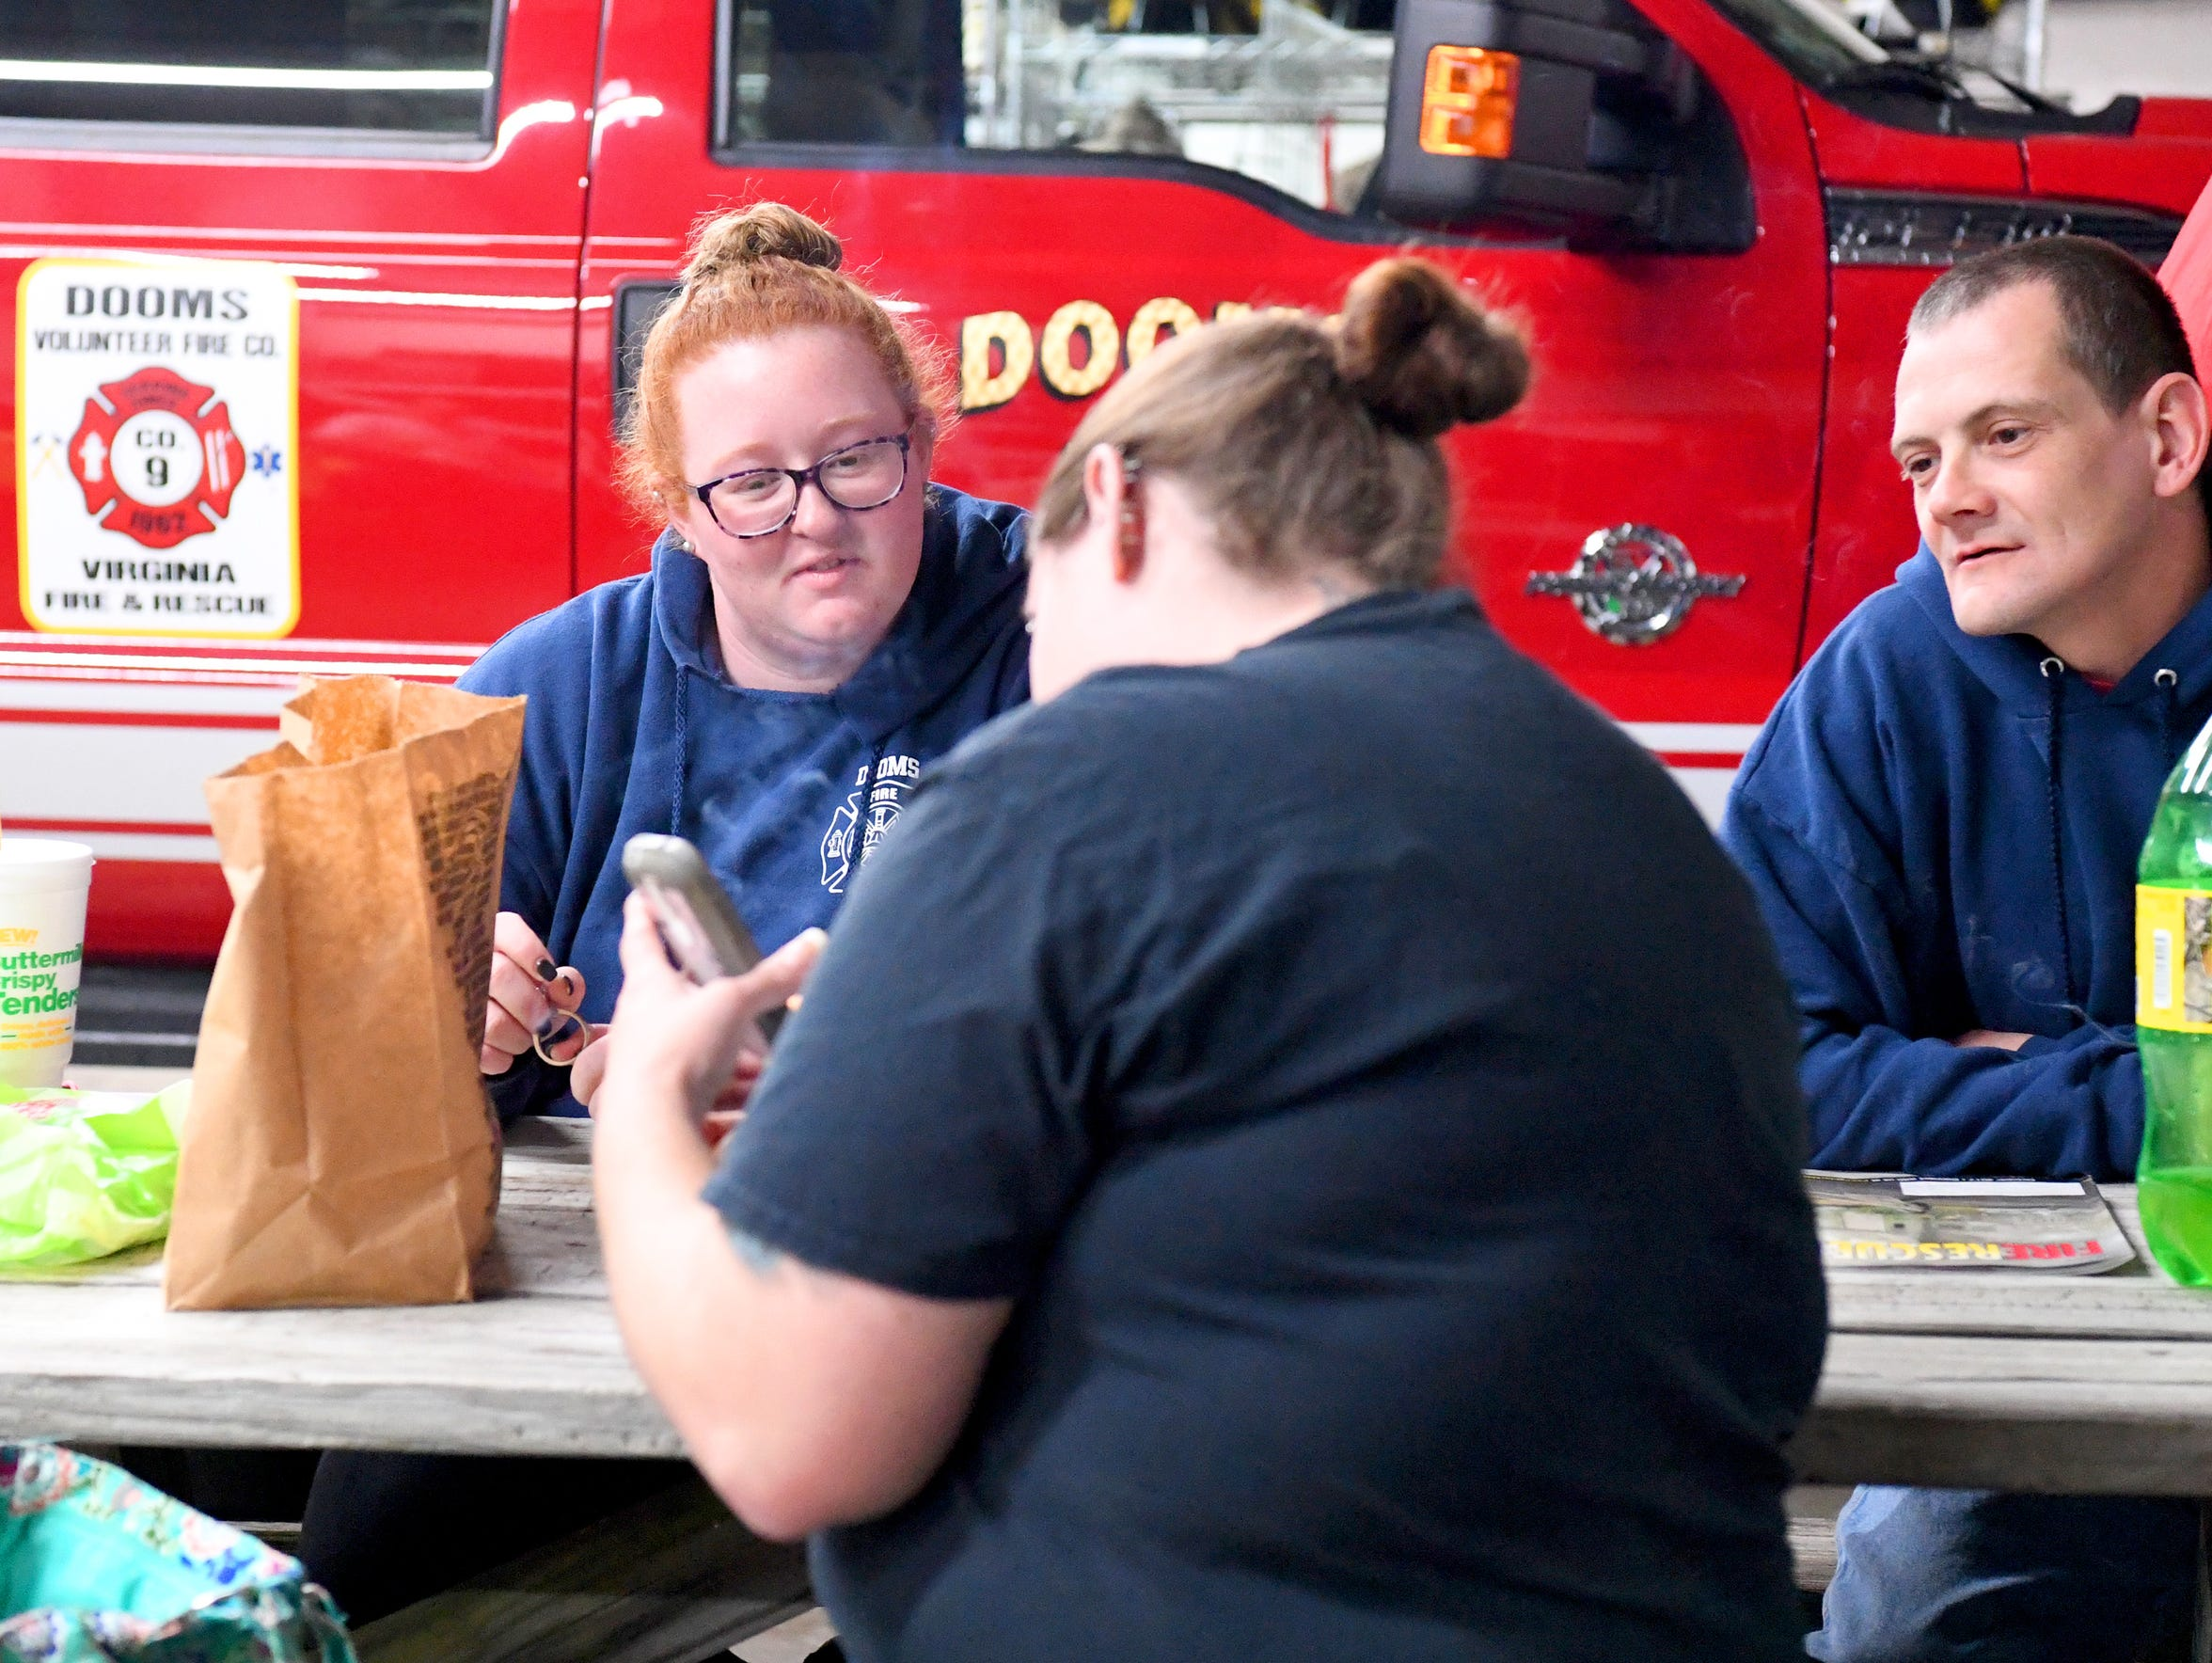 Dooms volunteers MacKenzee Anderson, Michael Hartsook and Tiffany Bright hang out at the firehouse on a Thursday night in October, ready in case any calls come in. Bright enjoys this downtime to socialize with the other volunteers there who are some of her best friends.